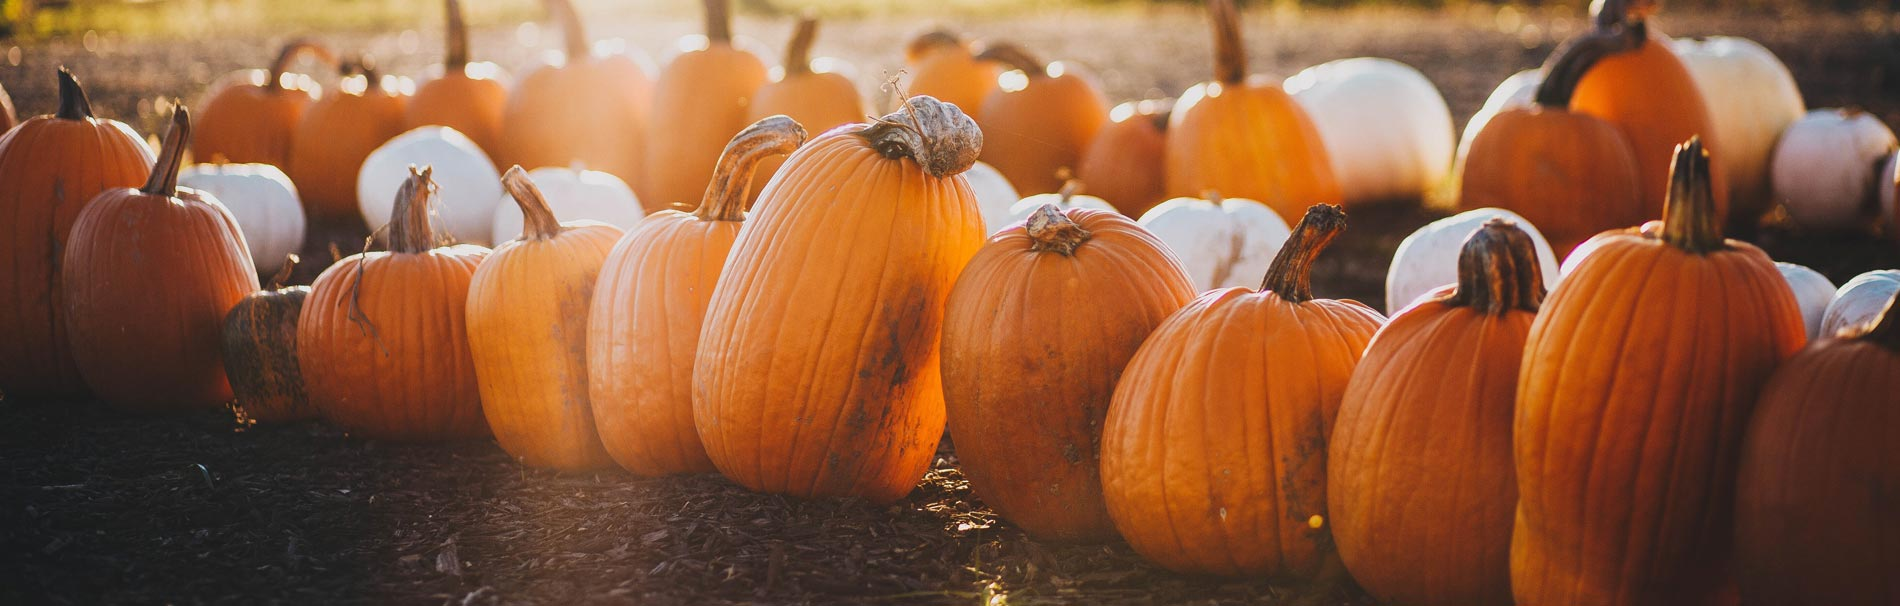 11 Things We Love About Fall - Senior Retirement